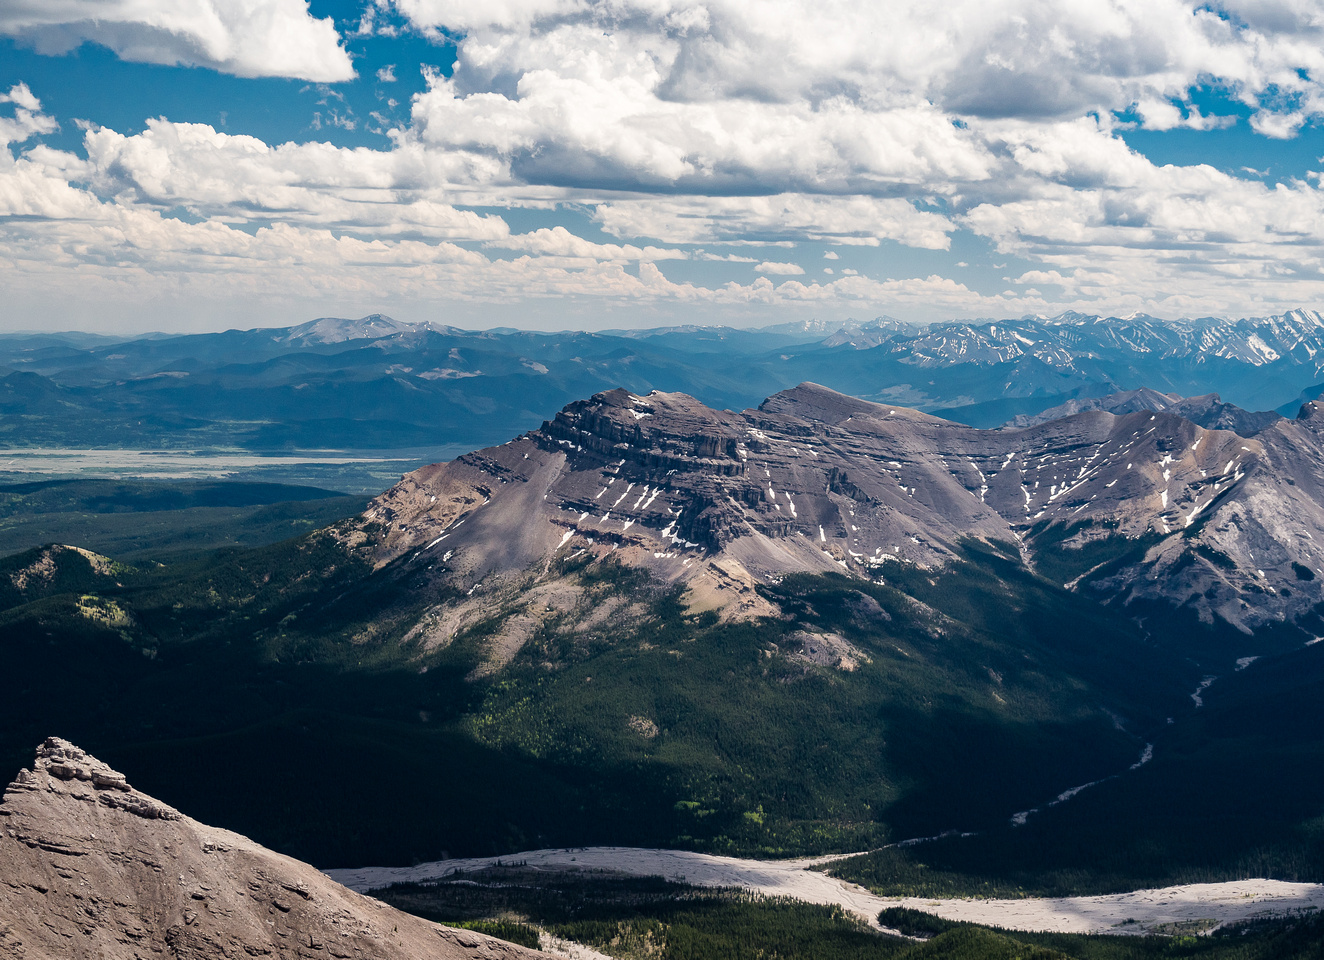 End Mountain (C) and Association Peak (R) looks small from here. Moose Mountain at distant left.